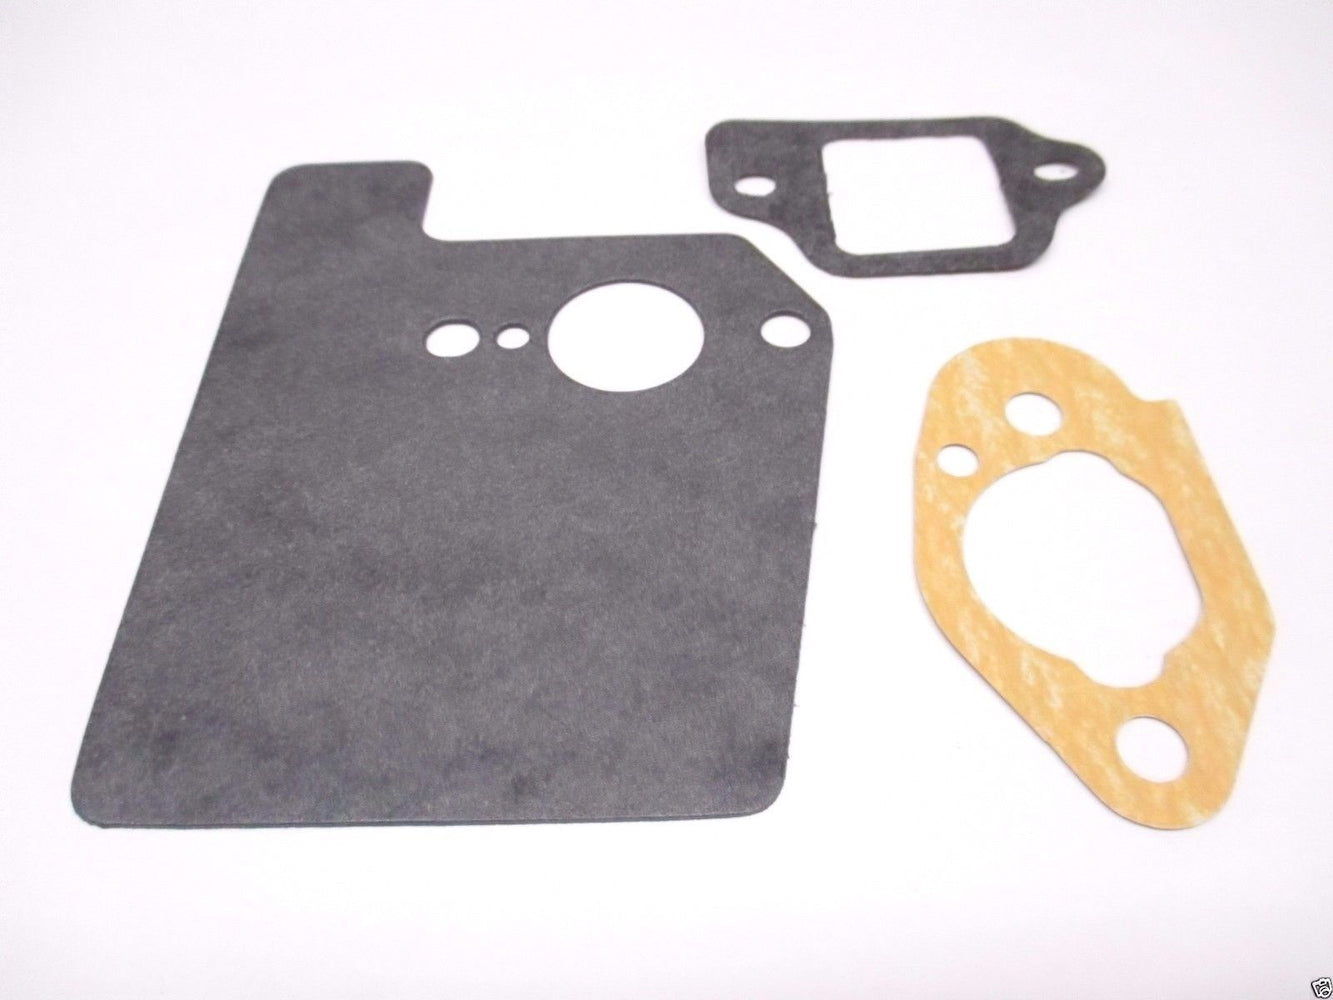 Honda Carburetor Gasket Set 16212-ZL8-000 16228-ZL8-000 19651-Z0L-000 Kit 4